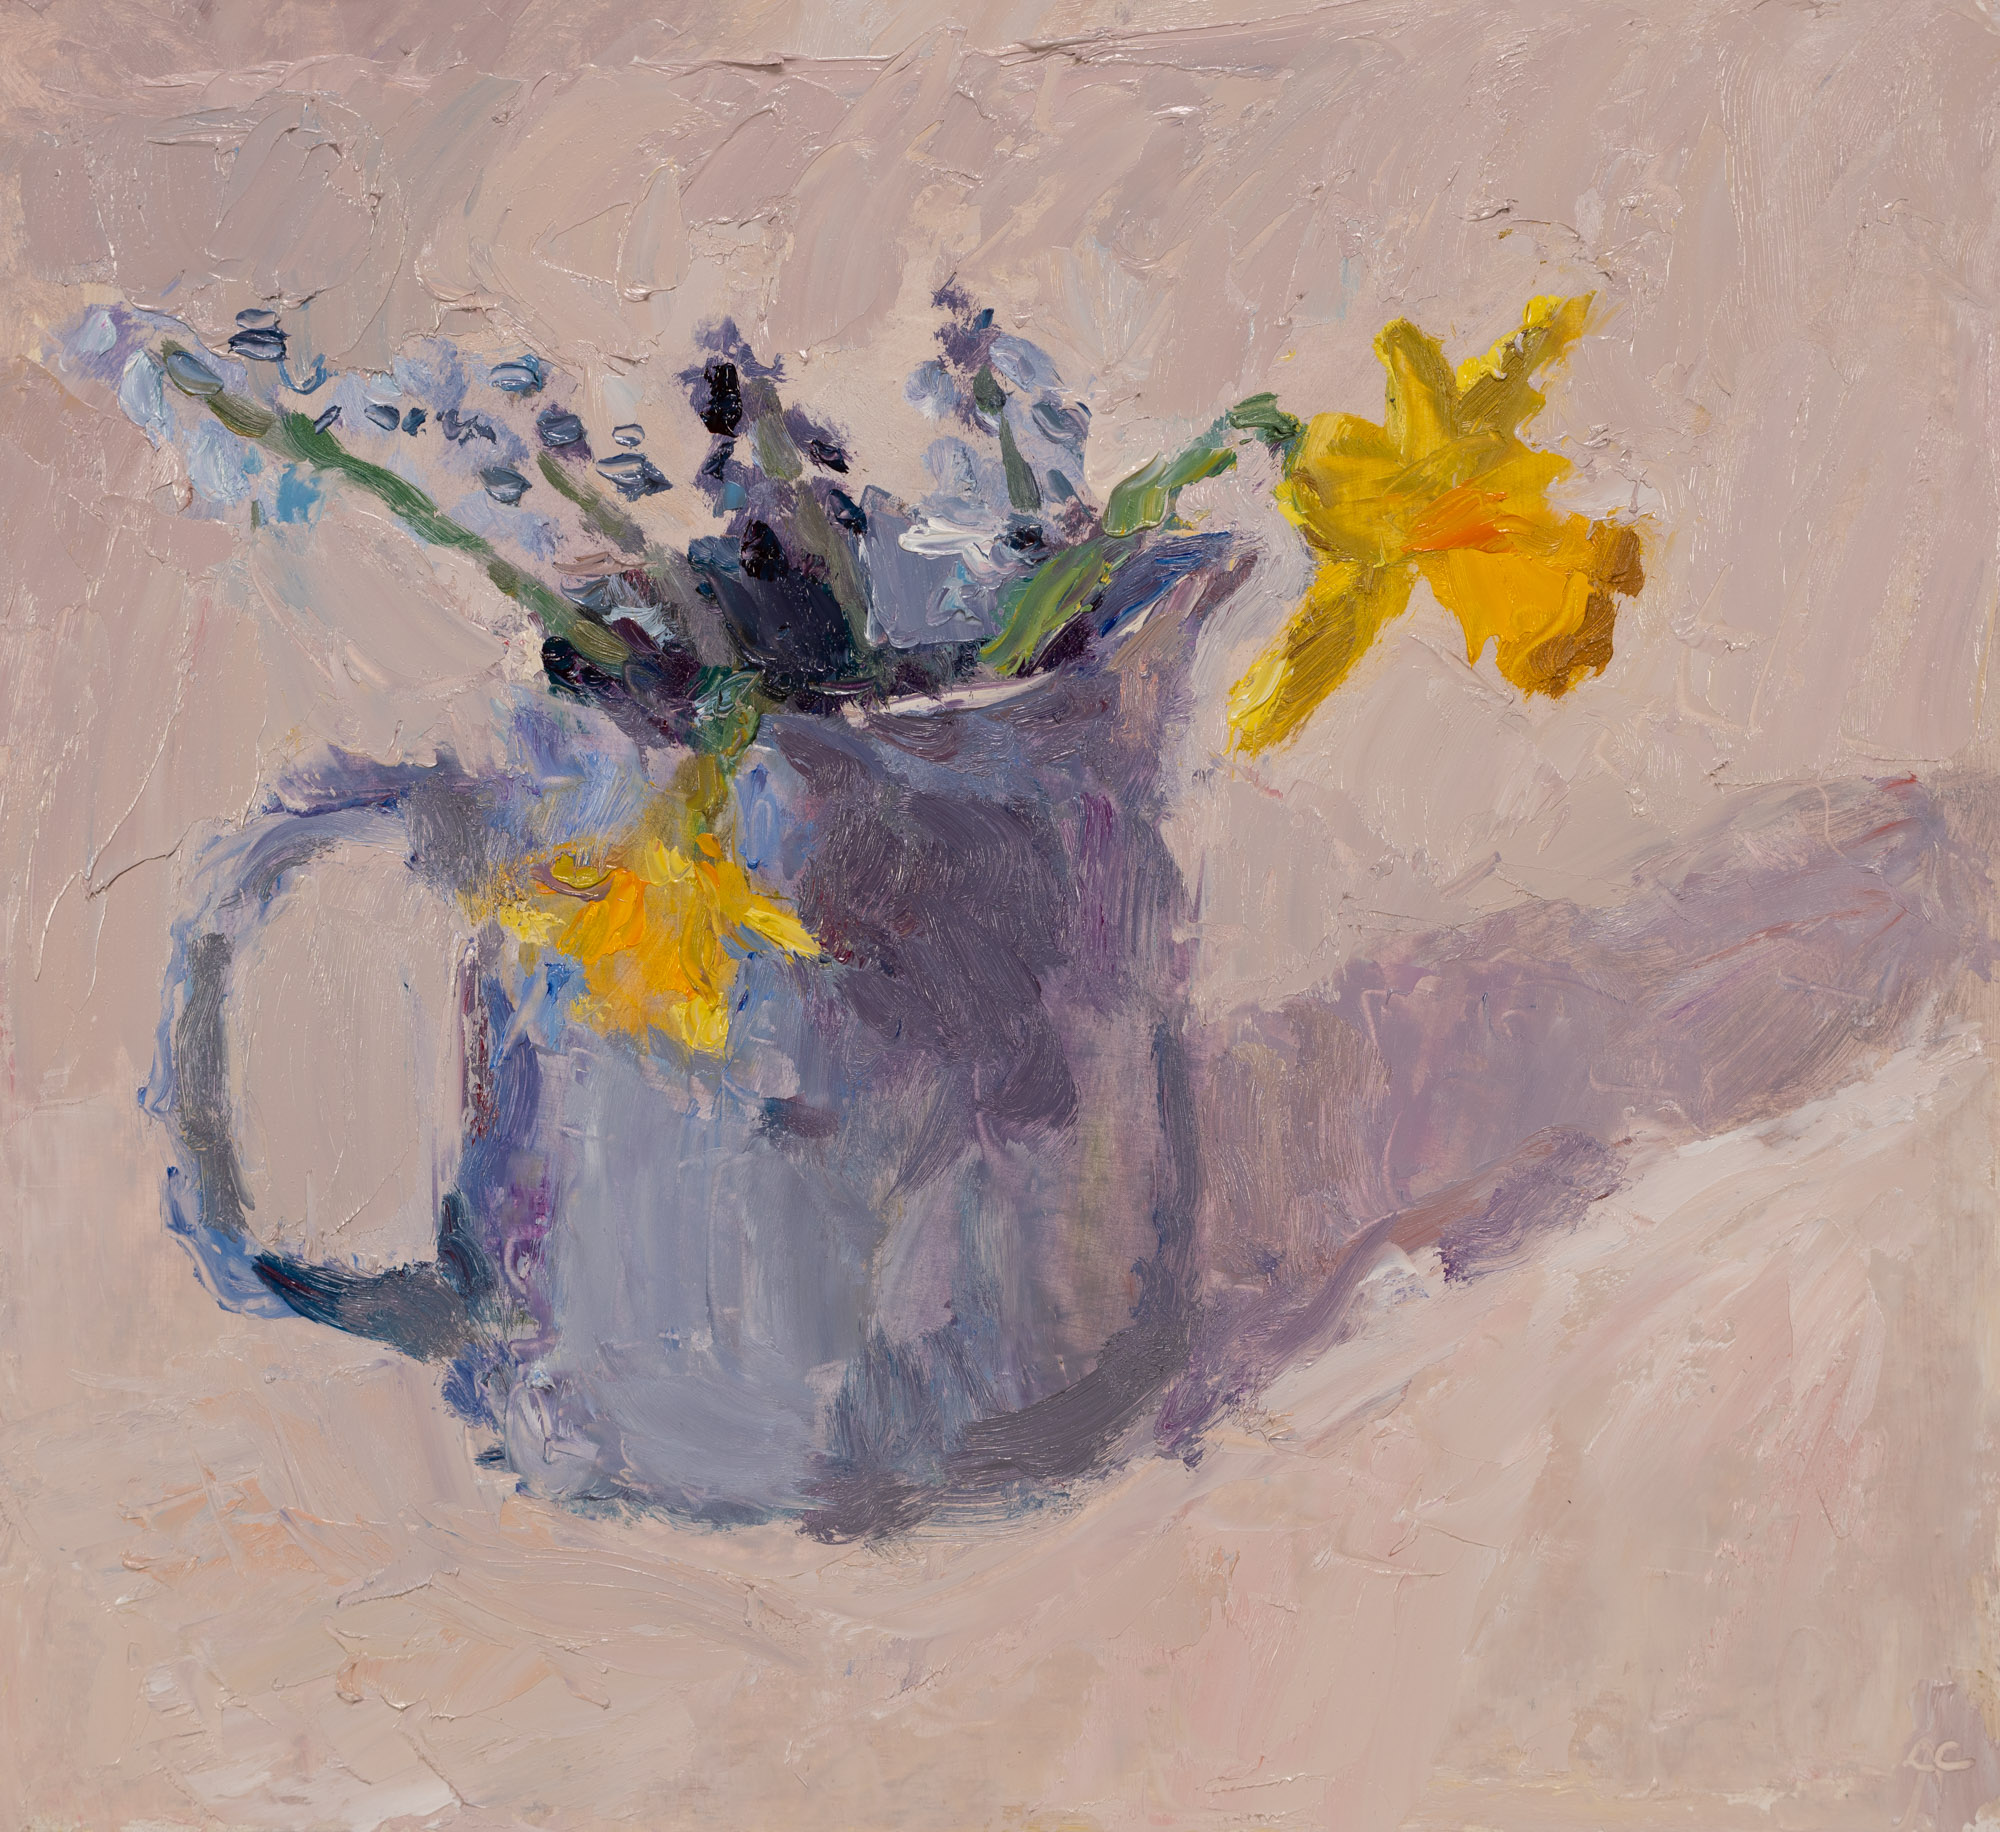 Spring Flowers in Blue Jug, Oil on Board, 25.2cm x 27.5cm (2019-19) SOLD